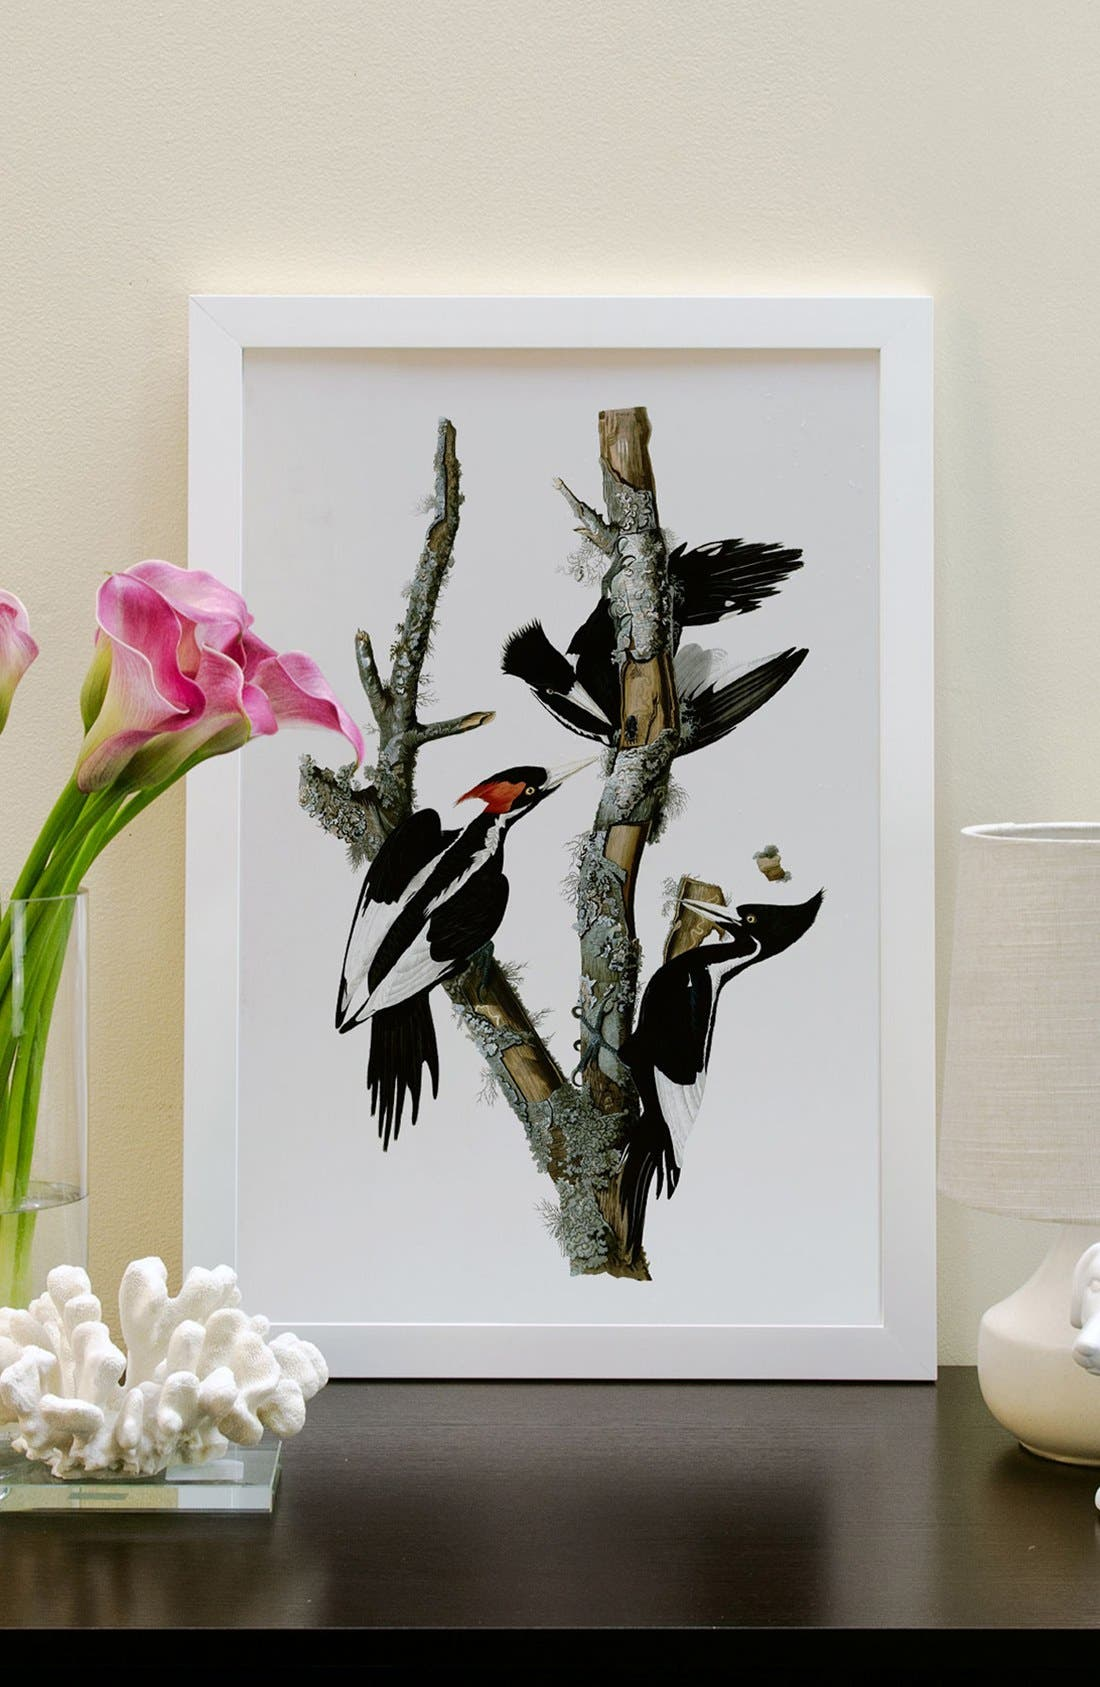 'Ivory Billed Woodpecker' Framed Fine Art Print,                             Alternate thumbnail 2, color,                             White